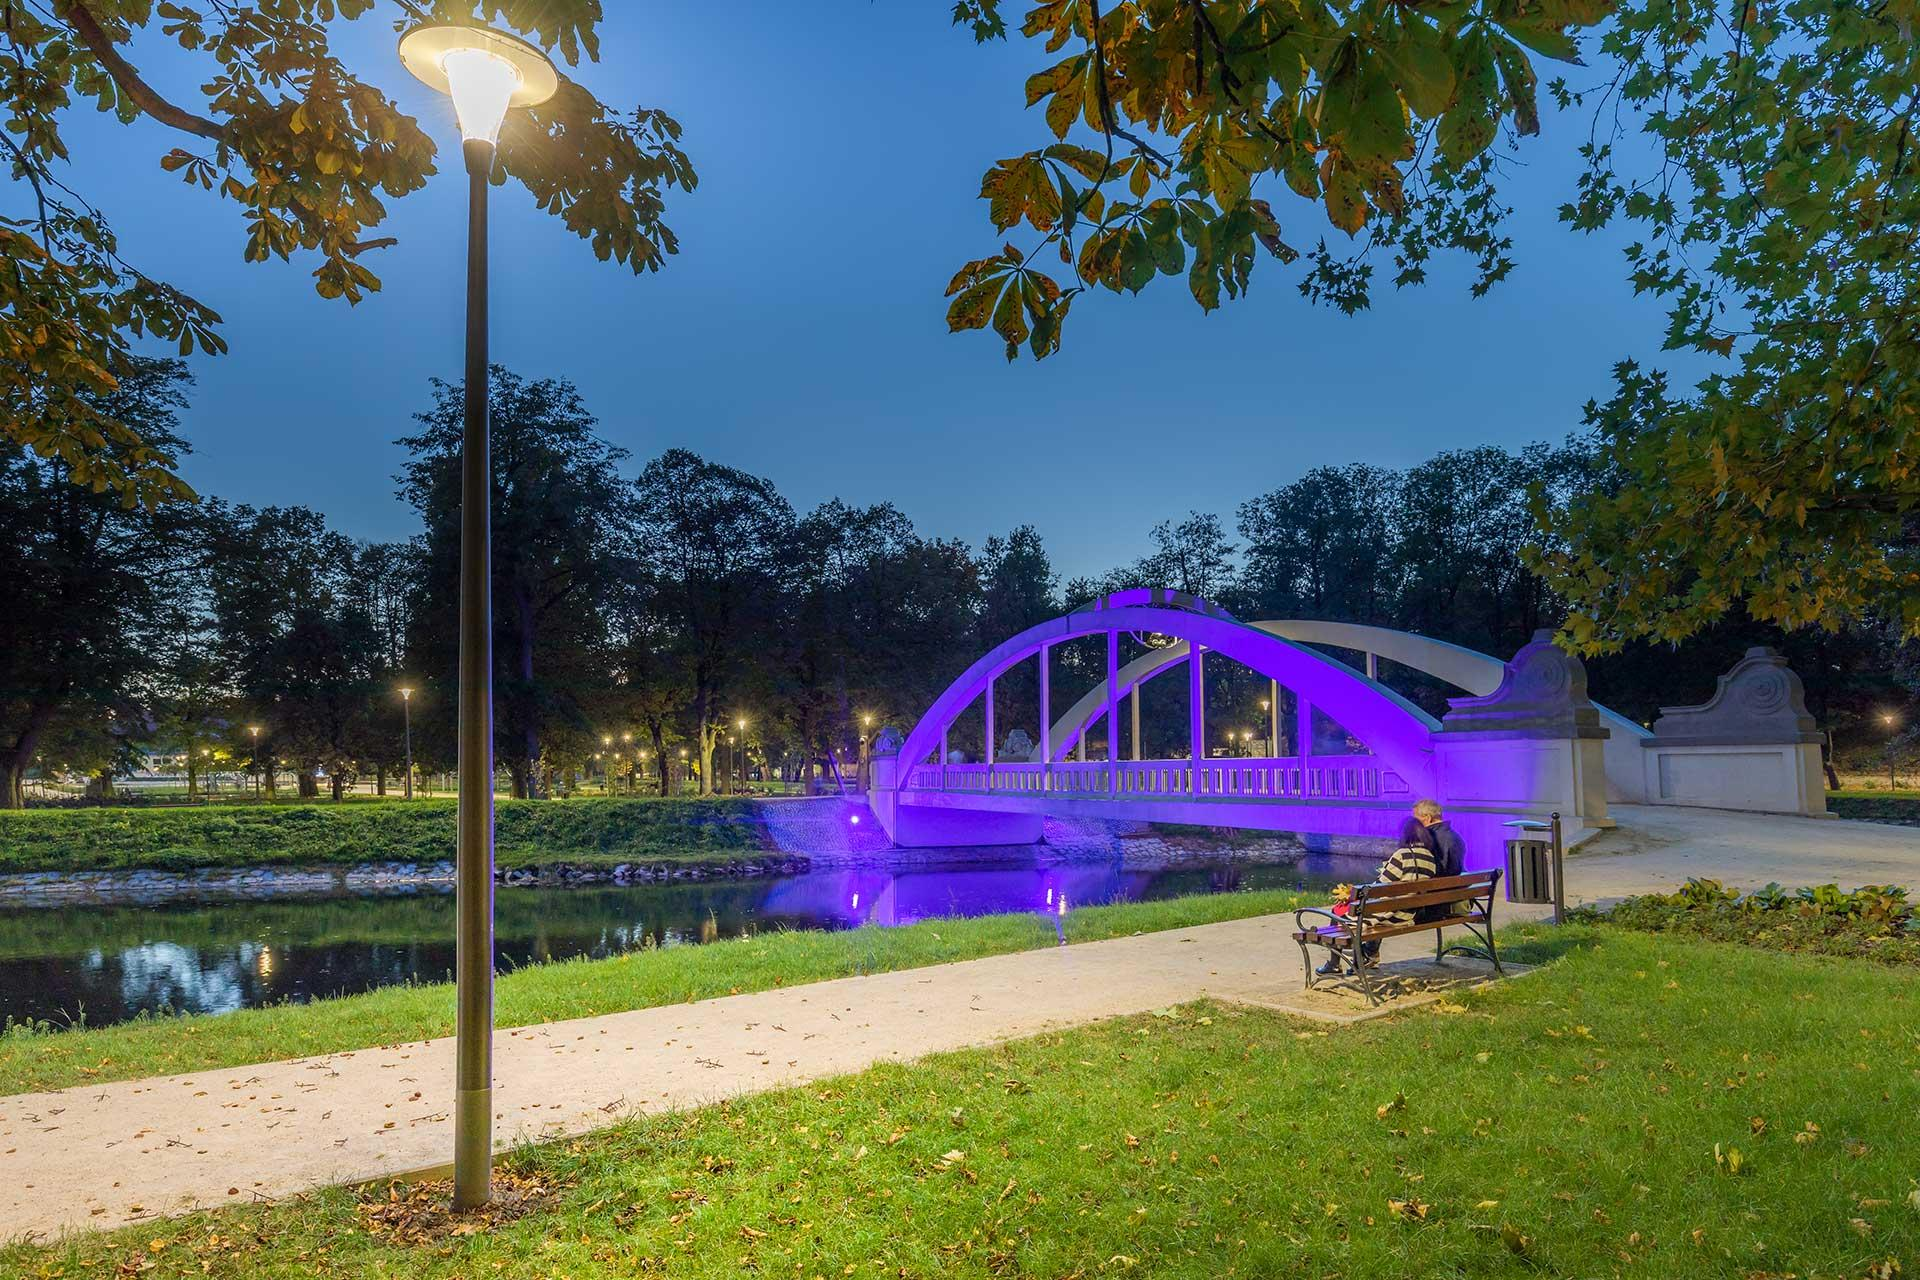 Pilzeo luminaires create a cosy ambiance for Central Park in Swidnica so residents can escape the city buzz and relax in this urban oasis